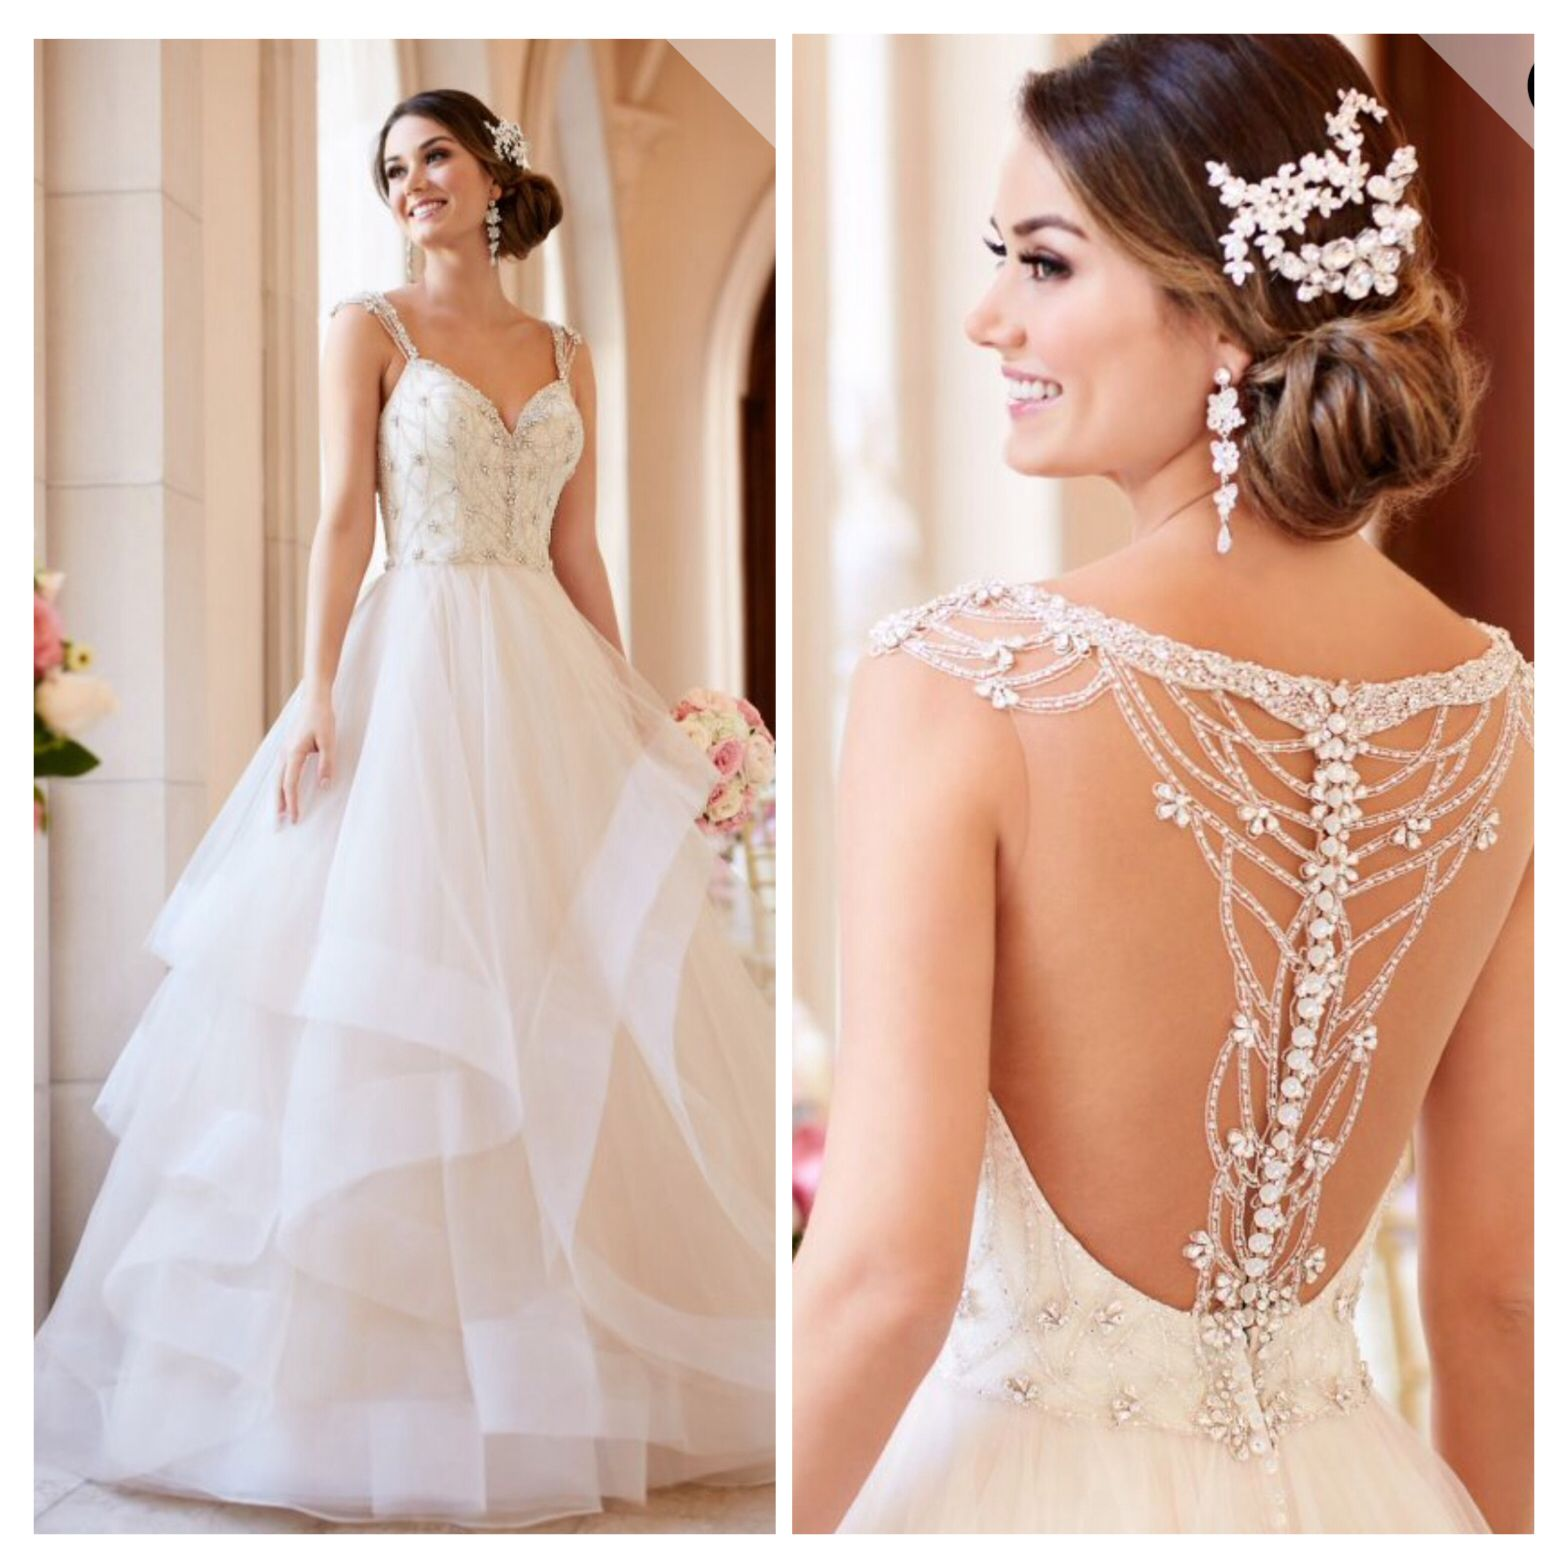 Gorgeous Ball Gown With Textured Bottom And Amazing Back Detail Arletbridal Arletbridalcouture Ball Gowns Wedding Wedding Dresses Wedding Dresses Romantic,50th Anniversary Golden Wedding Anniversary Dresses